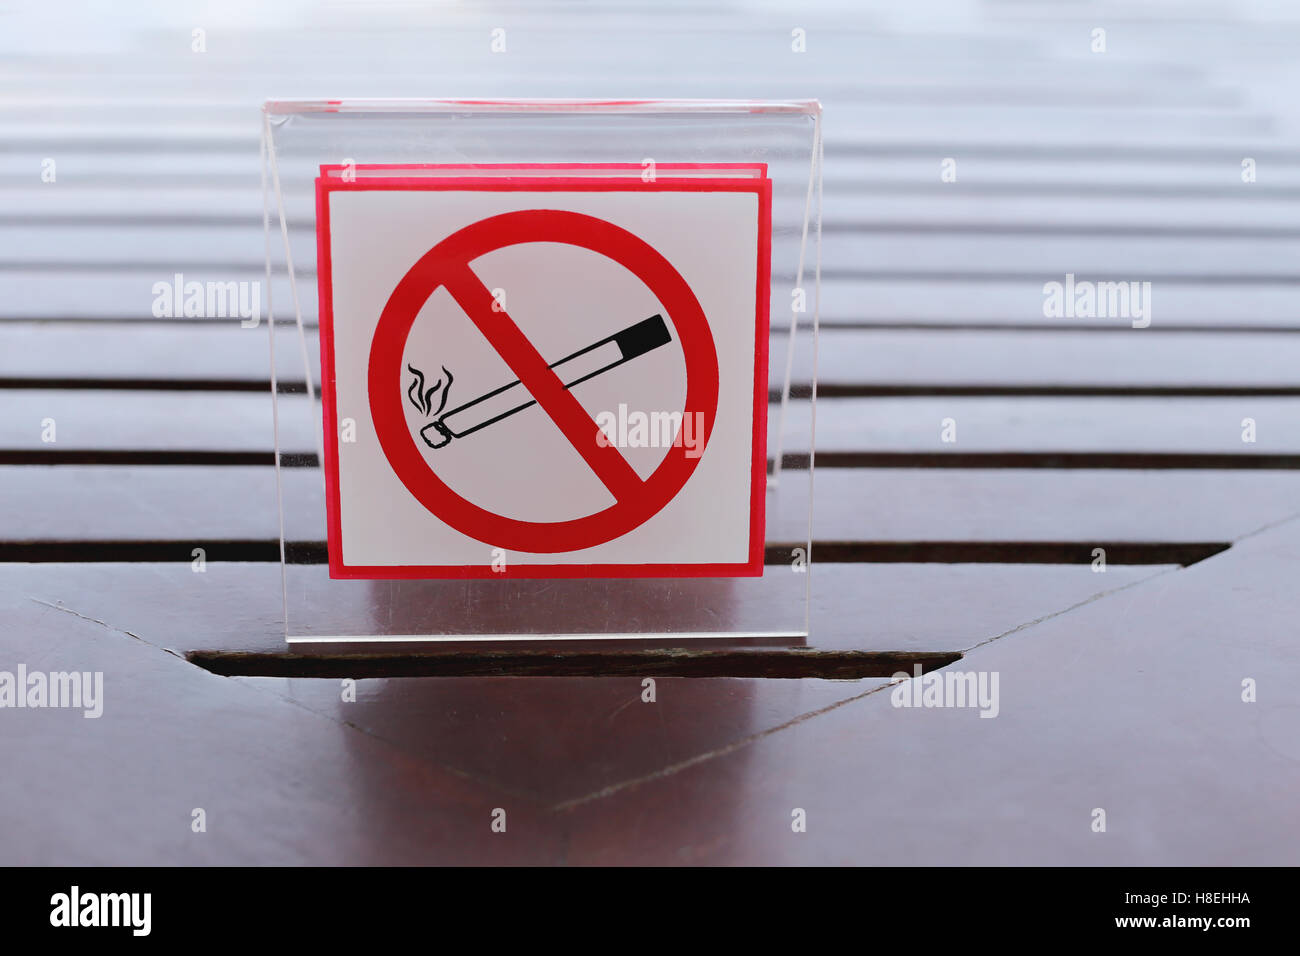 Signs Of No Smoking On The Table In Restaurant Stock Photo - Restaurant table signs